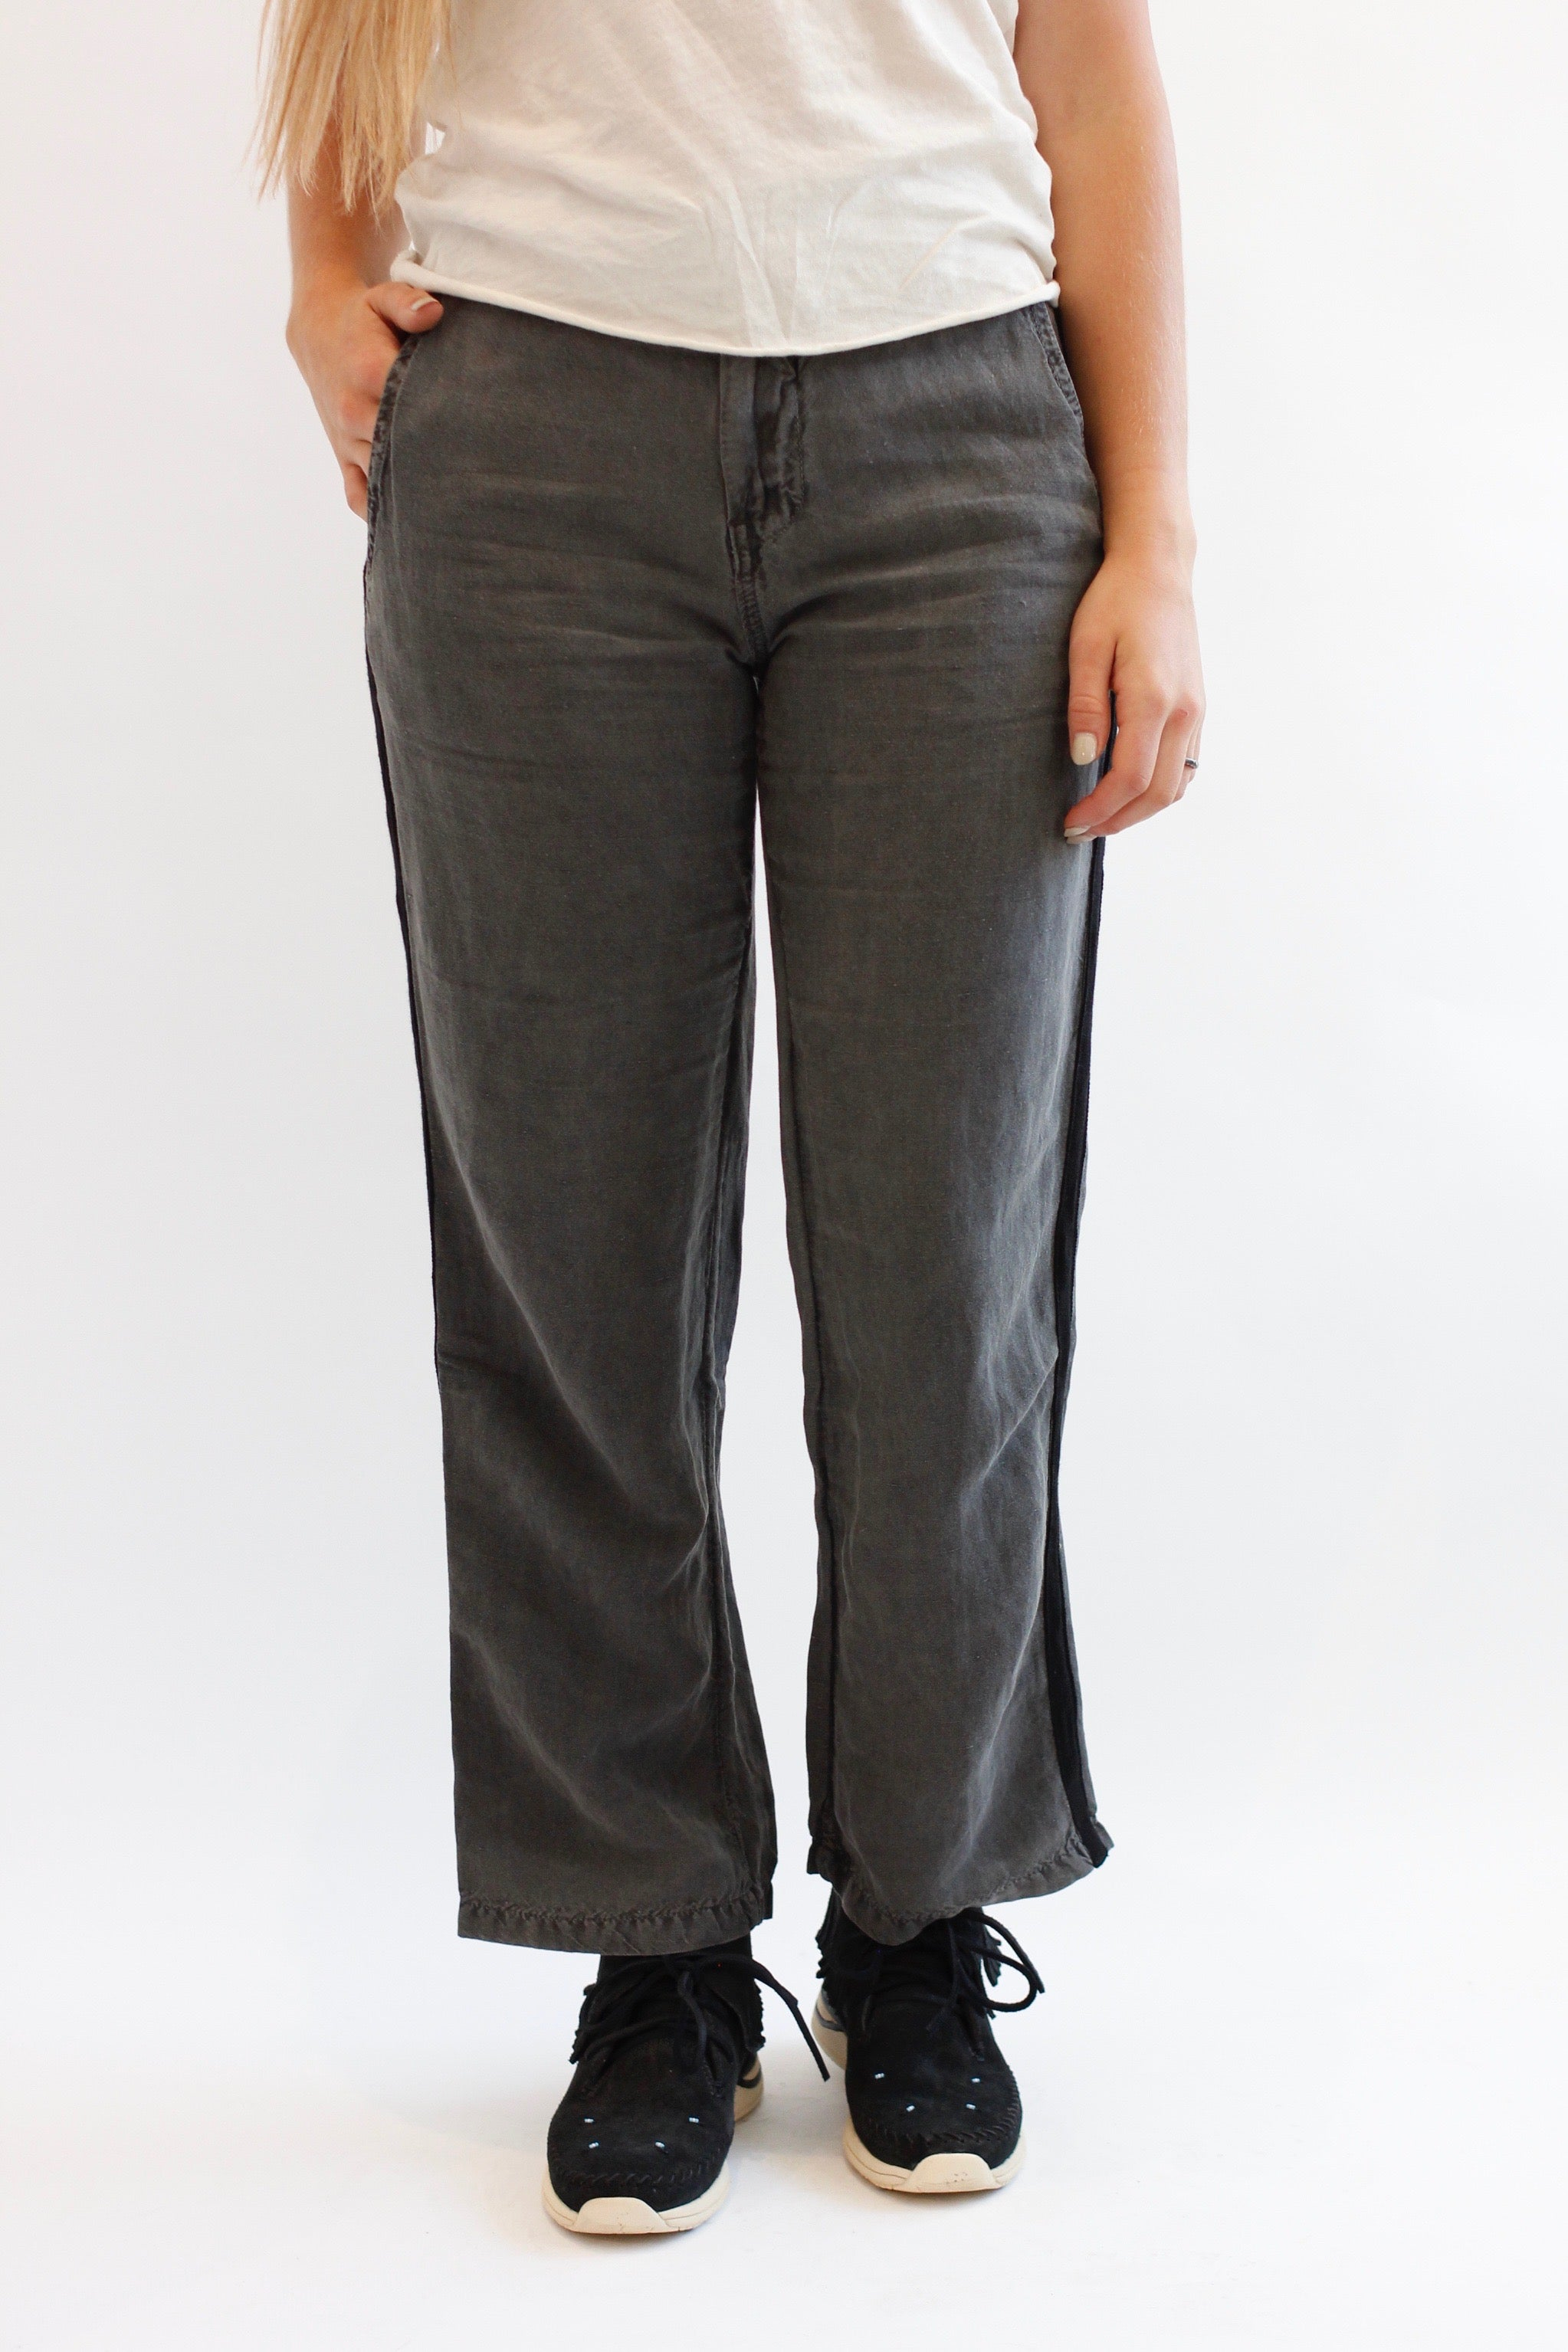 NSF linen/cotton pant